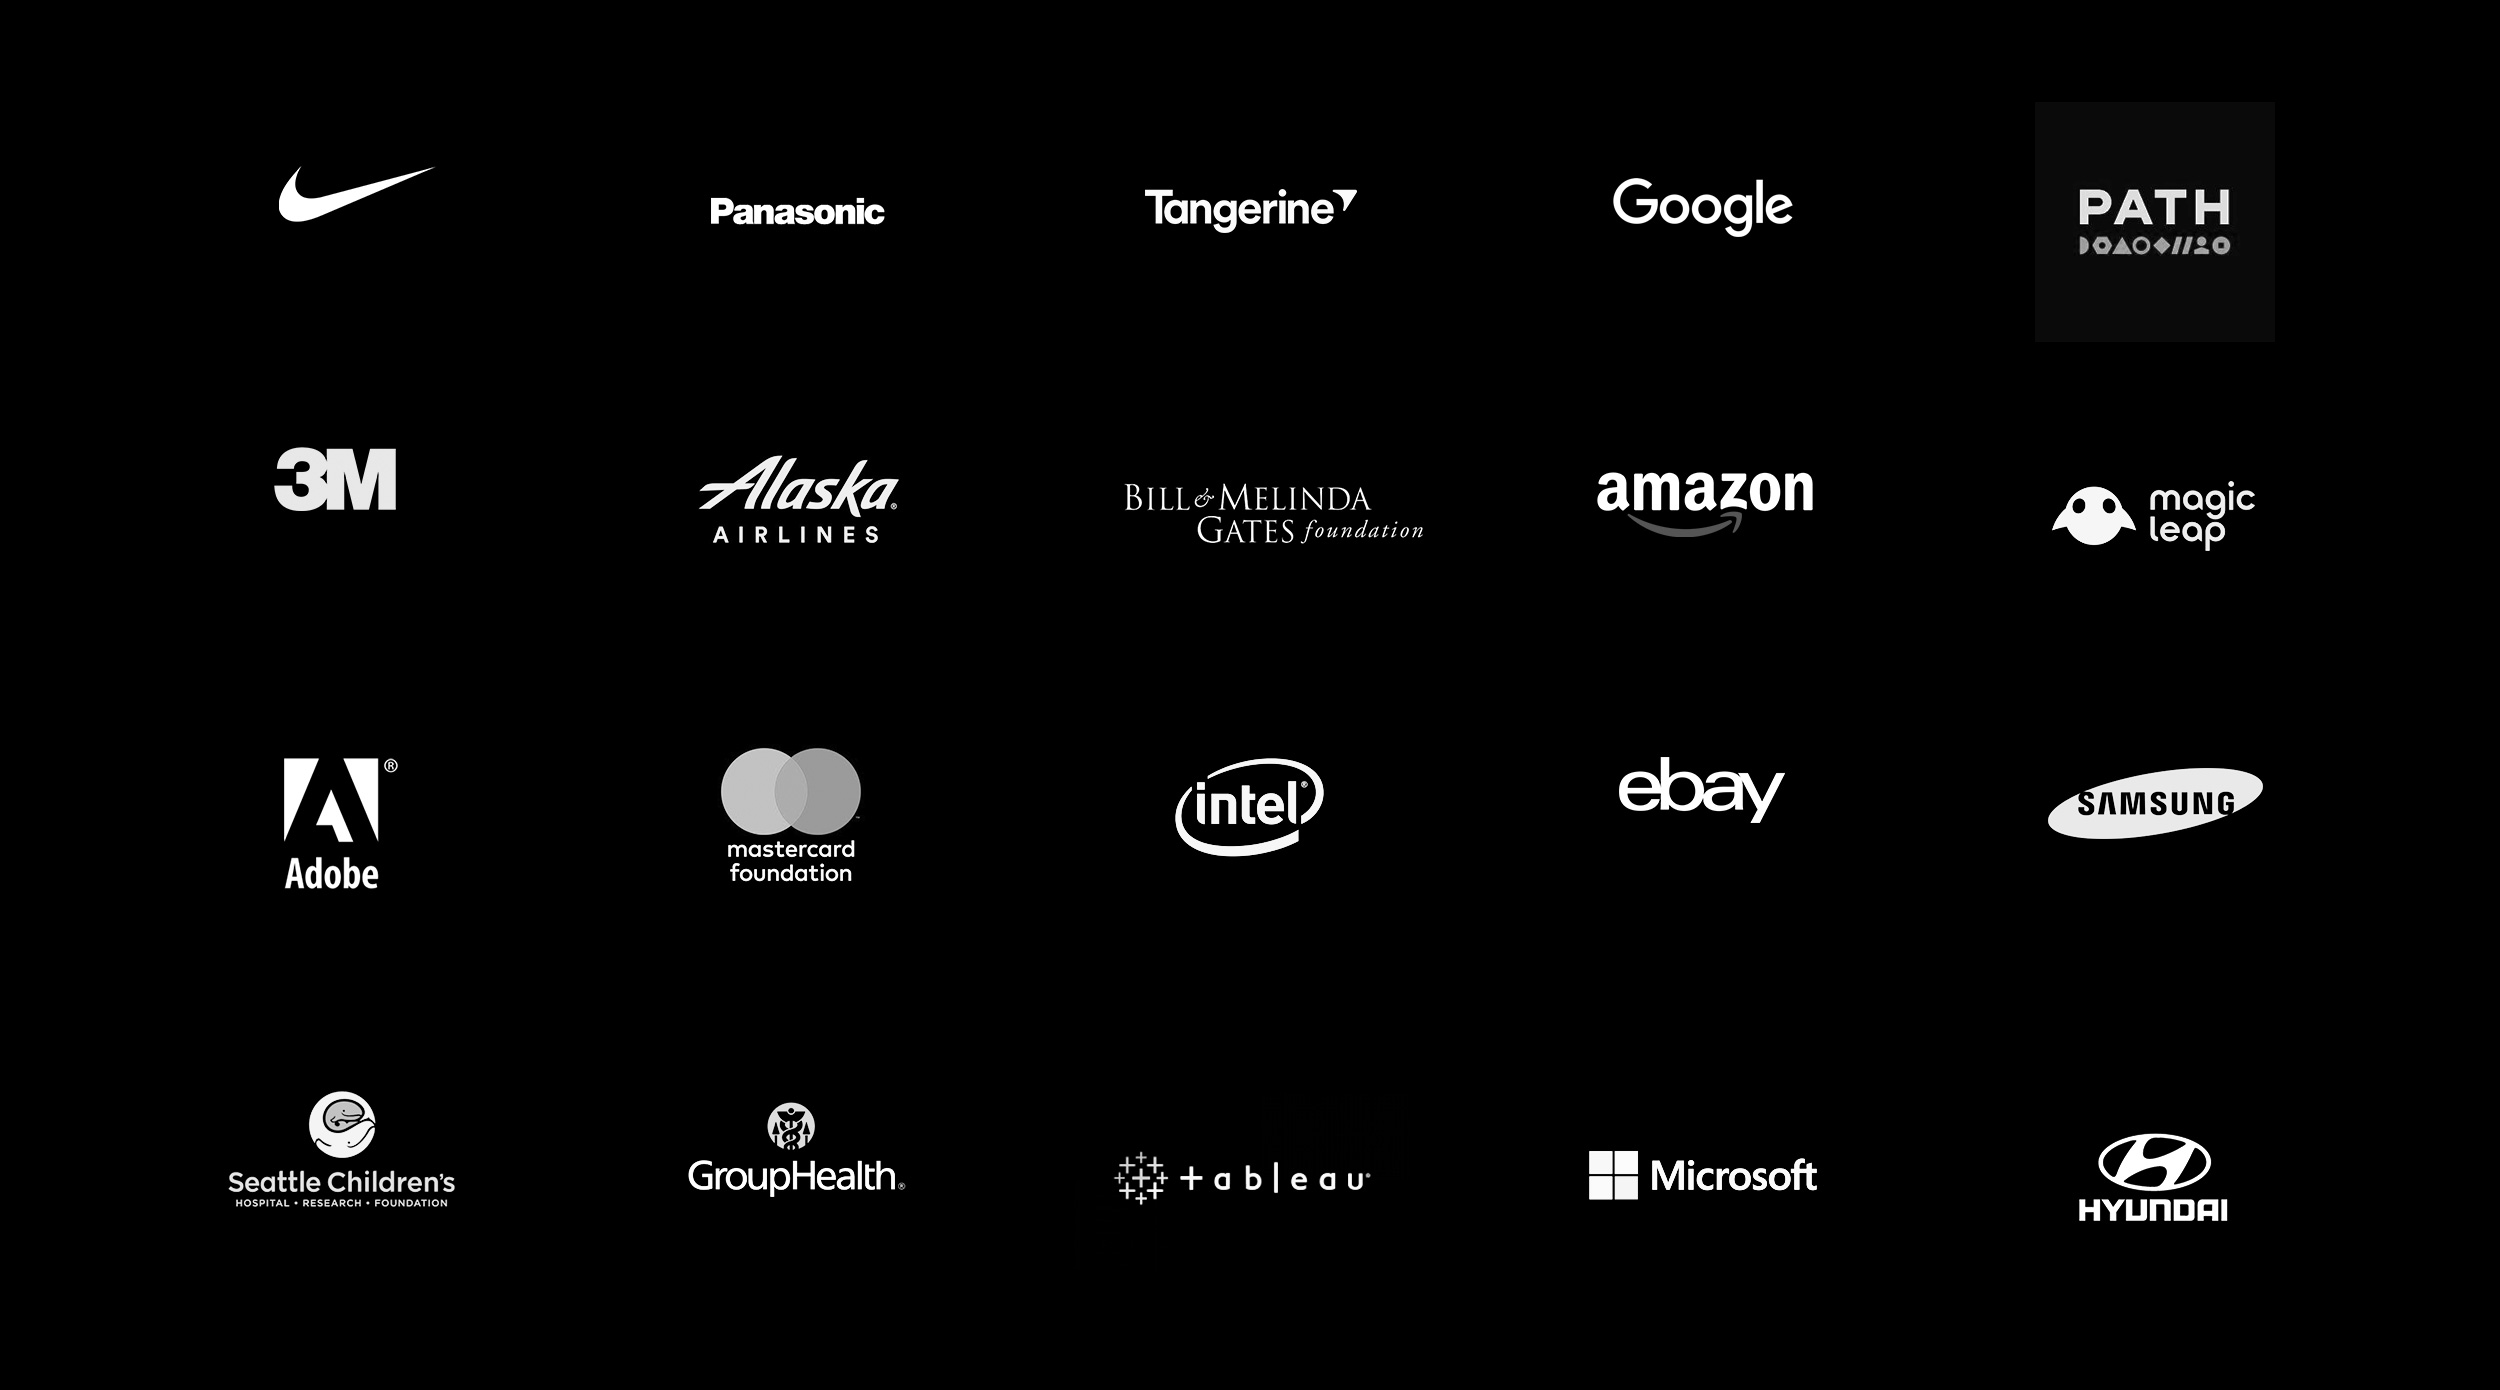 Artefact's partners include Nike, Tangerine, Google, Amazon, Magic Leap, Adobe, Samsung, Group Health, Tableau, Microsoft, Hyundai, and more.